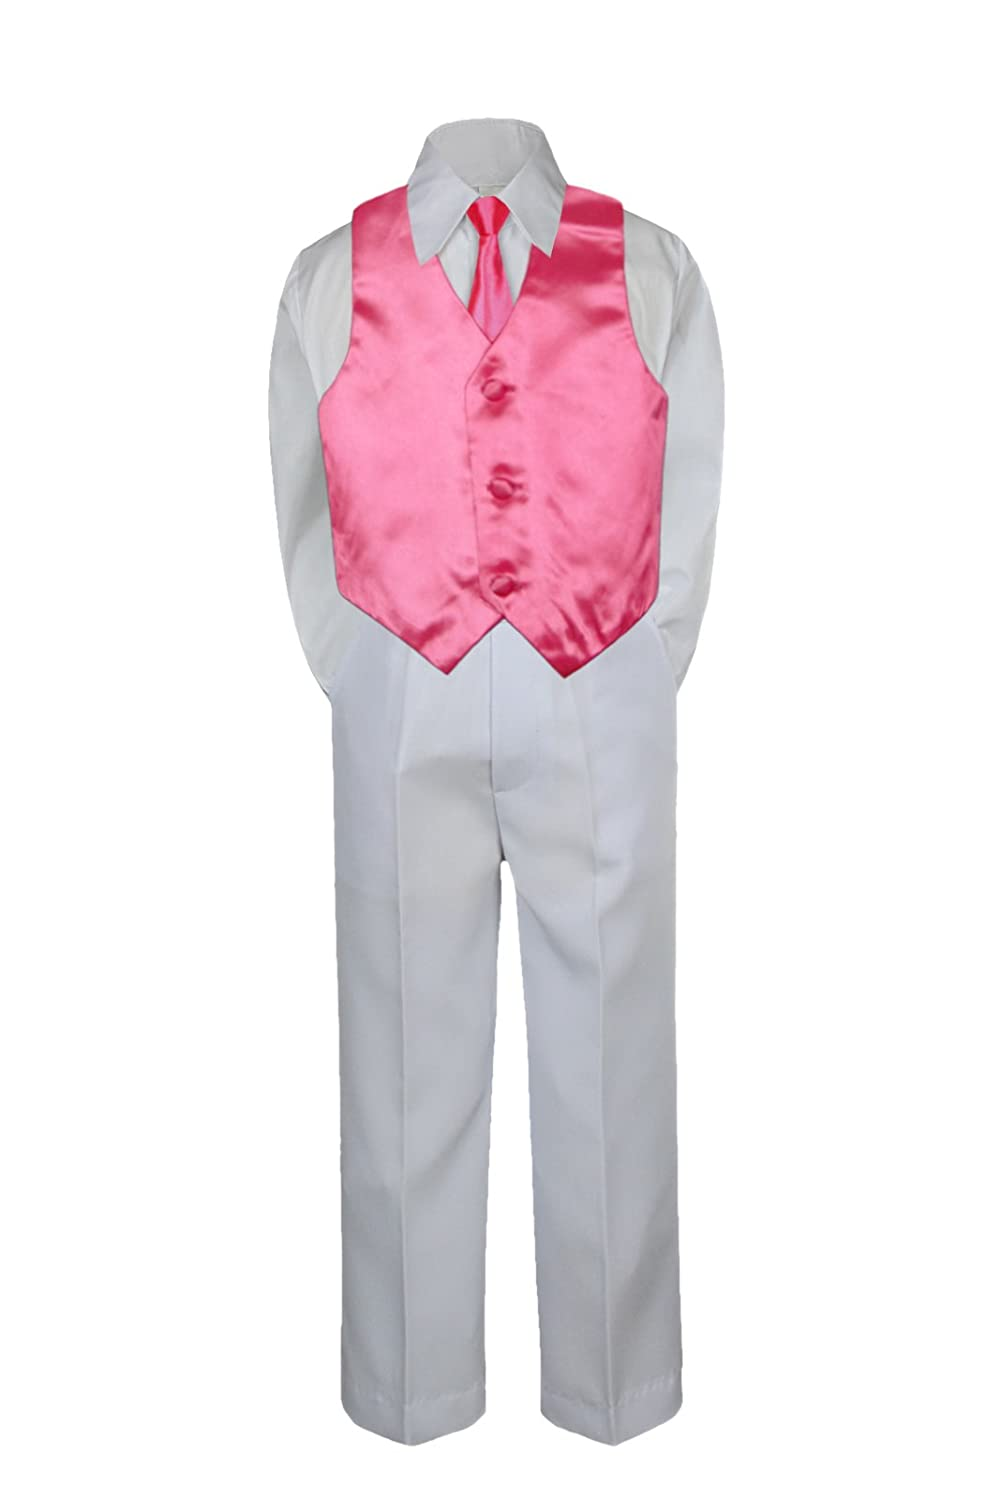 4pc Baby Toddler Boy Kid Formal Suit White Pants Shirt Vest Necktie Set 5-7